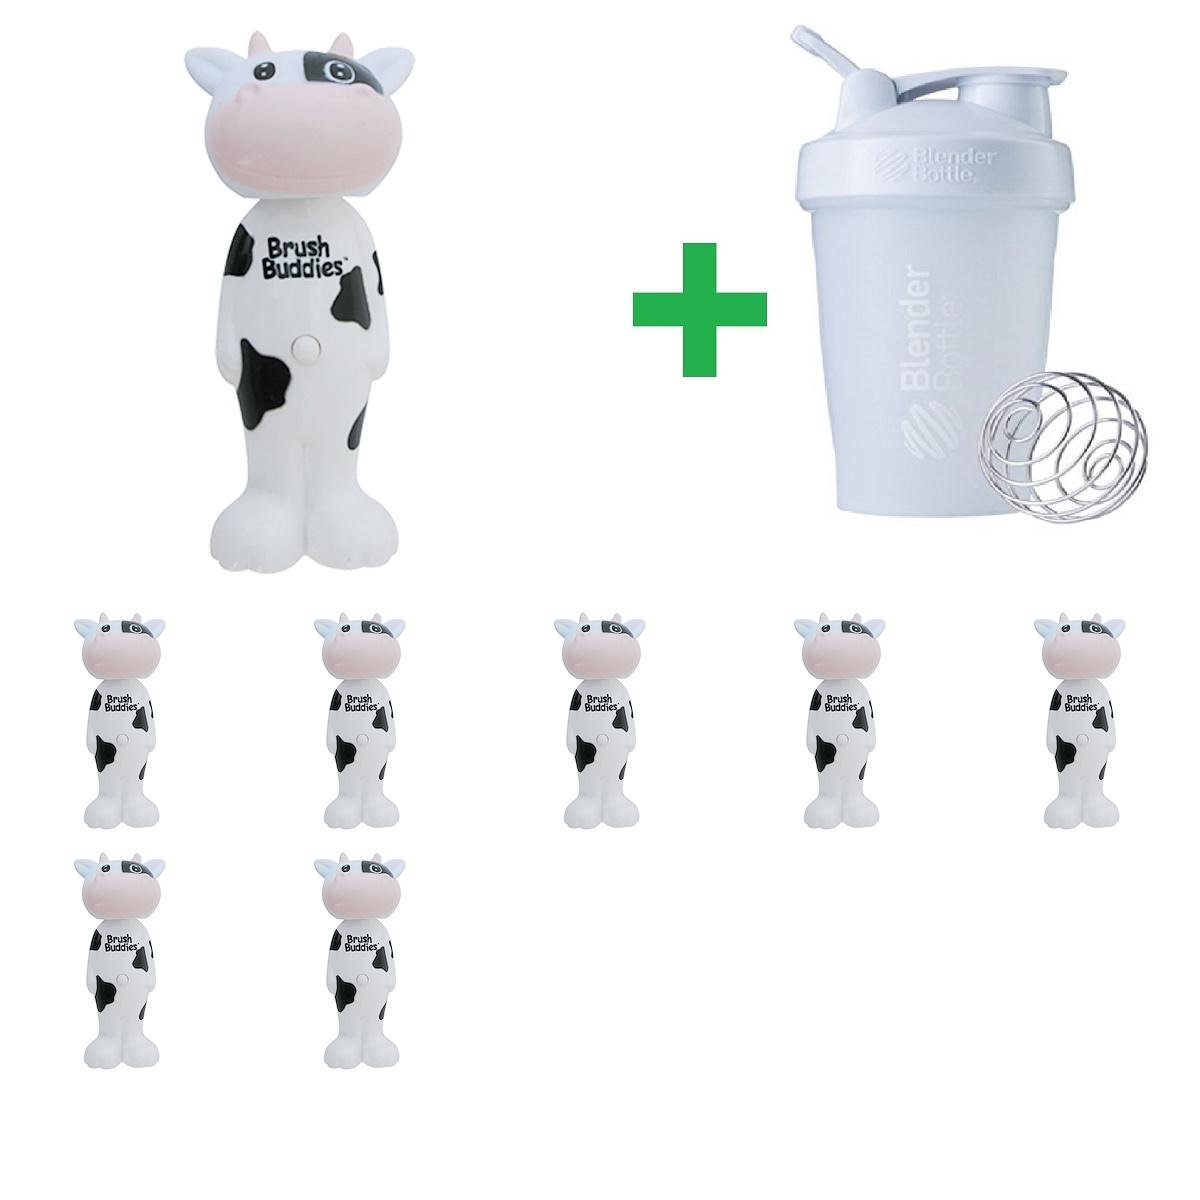 Brush Buddies, Poppin', Milky Wayne Cow, Soft, 1 Toothbrush(8 Packs)+ Assorted Sundesa, BlenderBottle, Classic With Loop, 20 oz